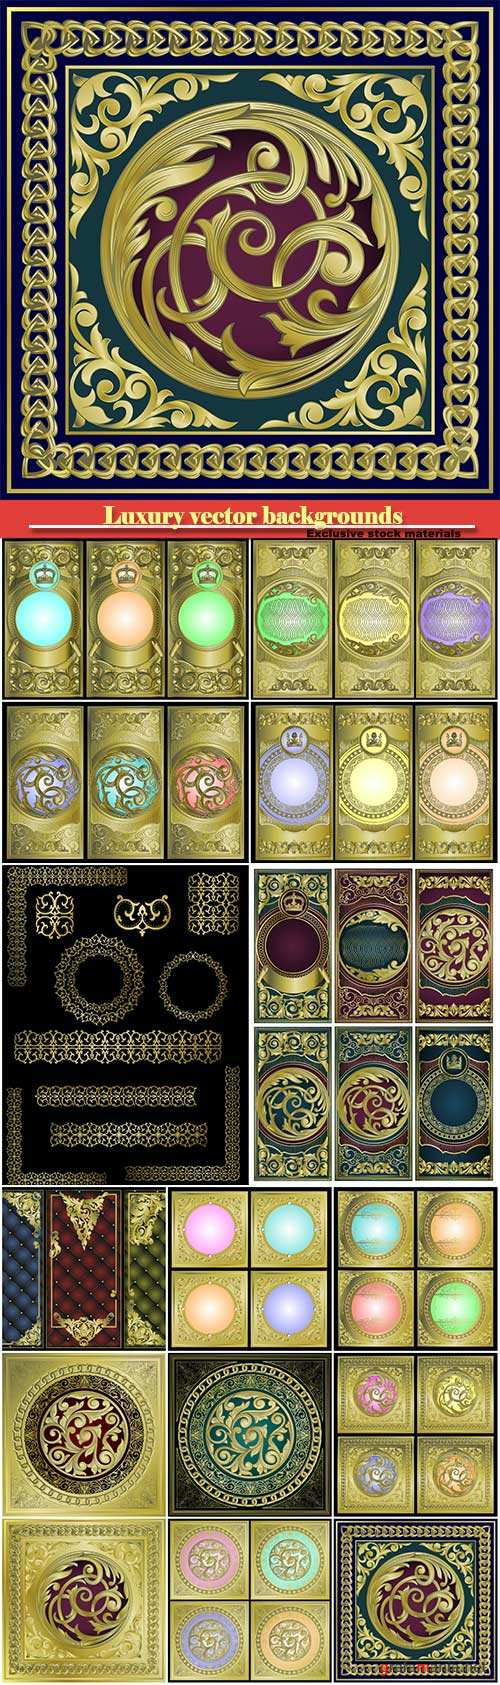 Luxury vector backgrounds and banners with gold decor